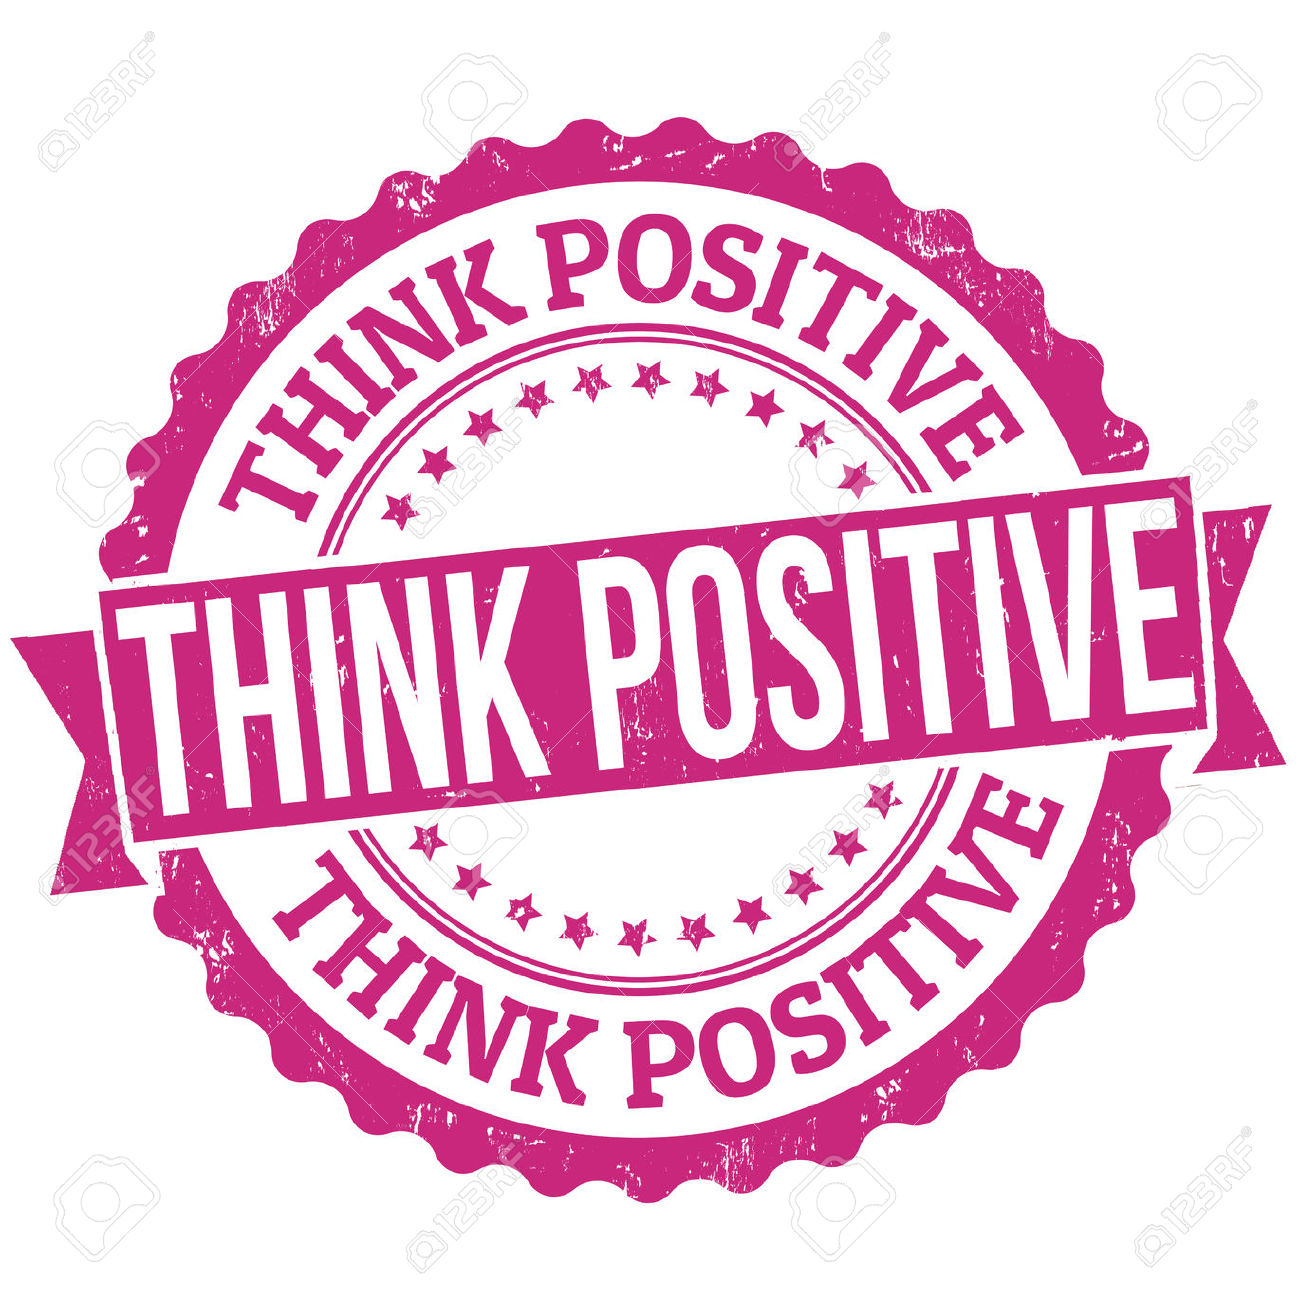 Think positive clipart image royalty free library think positive: Think positive | Clipart Panda - Free ... image royalty free library